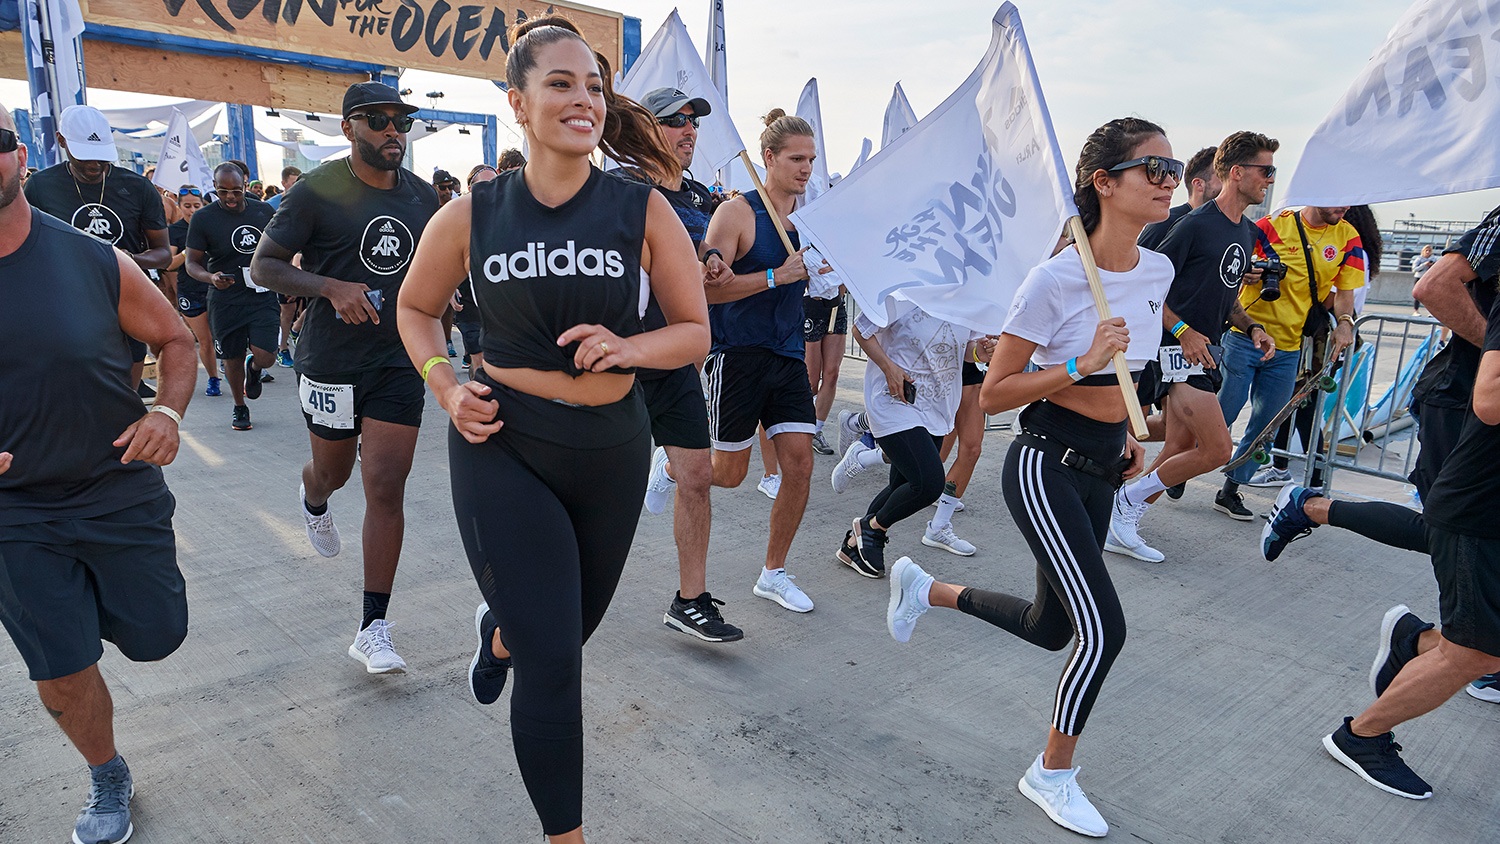 A RECORD-BREAKING RUN FOR THE OCEANS